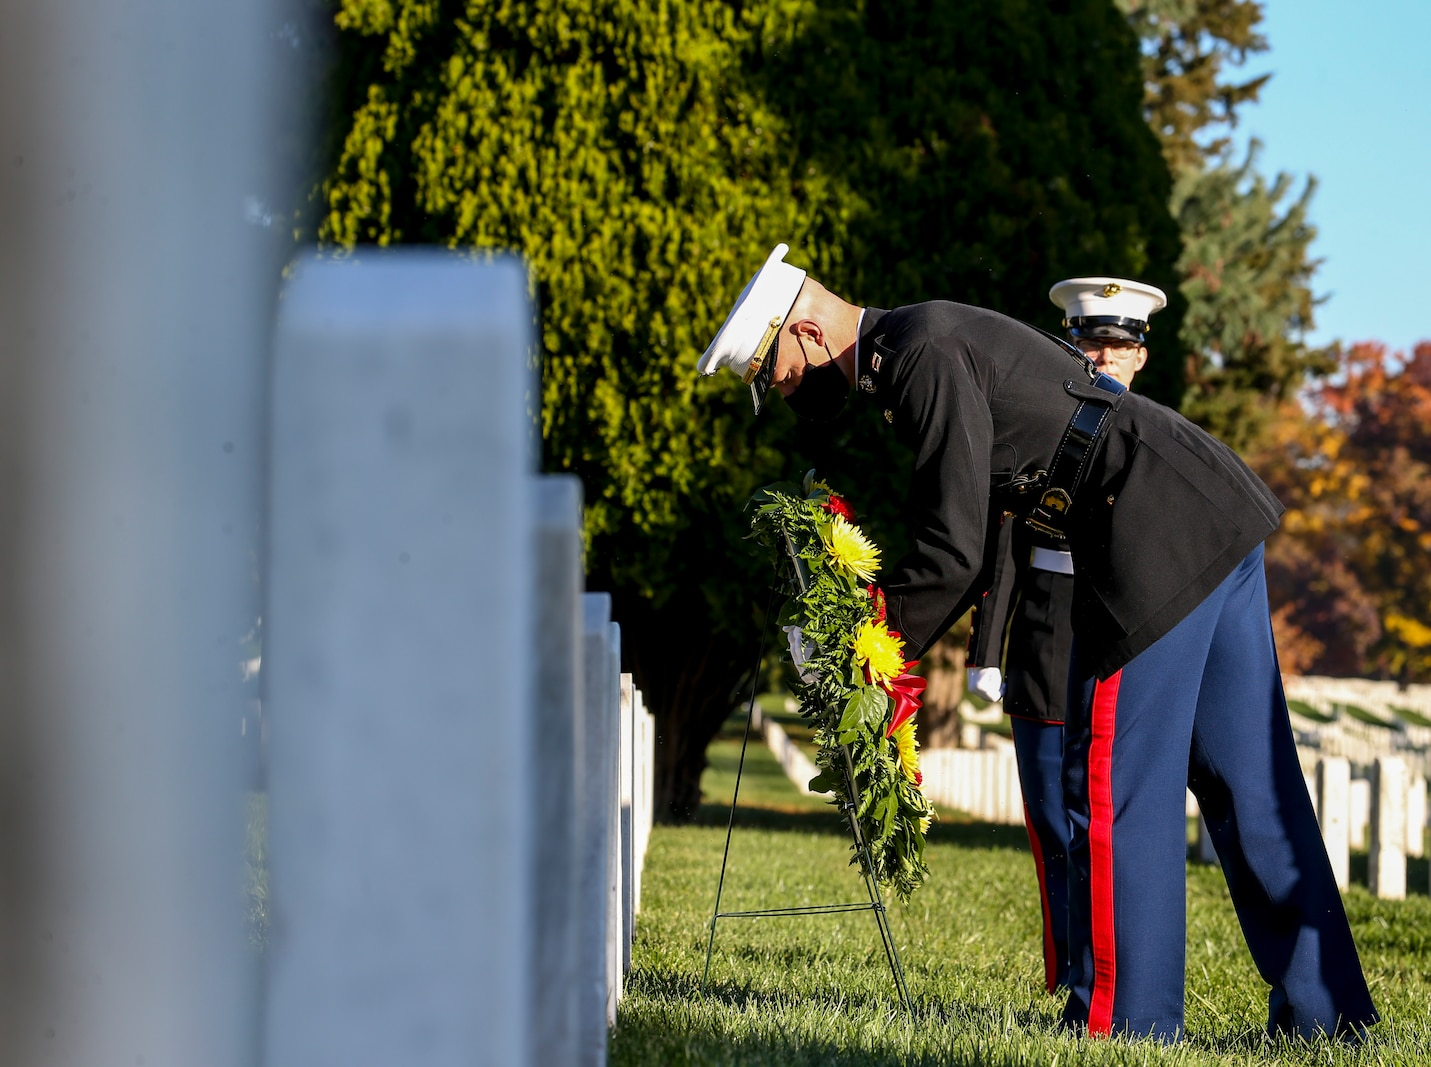 These ceremonies are held to celebrate those Marines' love and devotion to their Corps and Country, and to celebrate the Marine Corps birthday